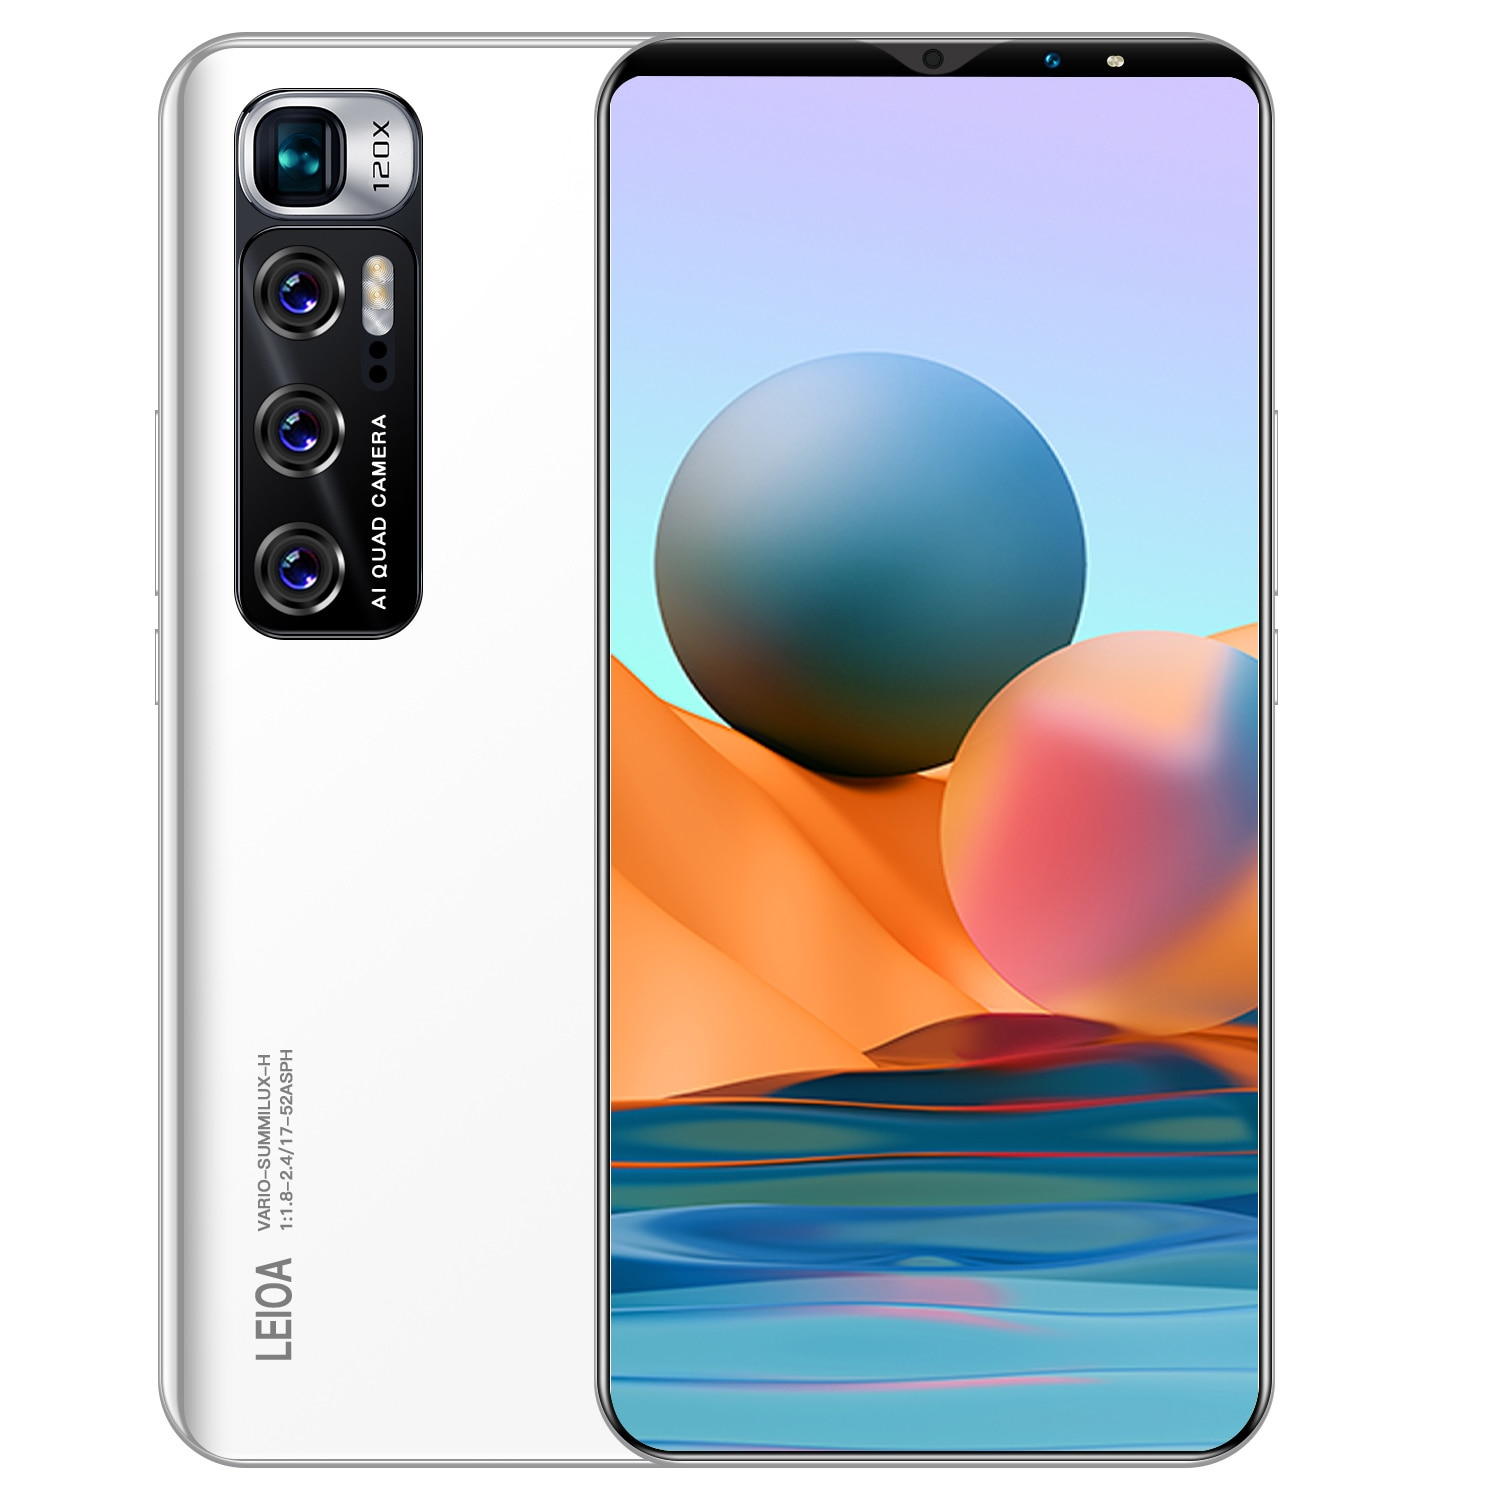 Note10 Pro Smartphone 6.1 inch 5G 6GB+128GB 4800mAh Unlocked Mobile Phones Android Telefones Celulares Global Version Cell Phone enlarge